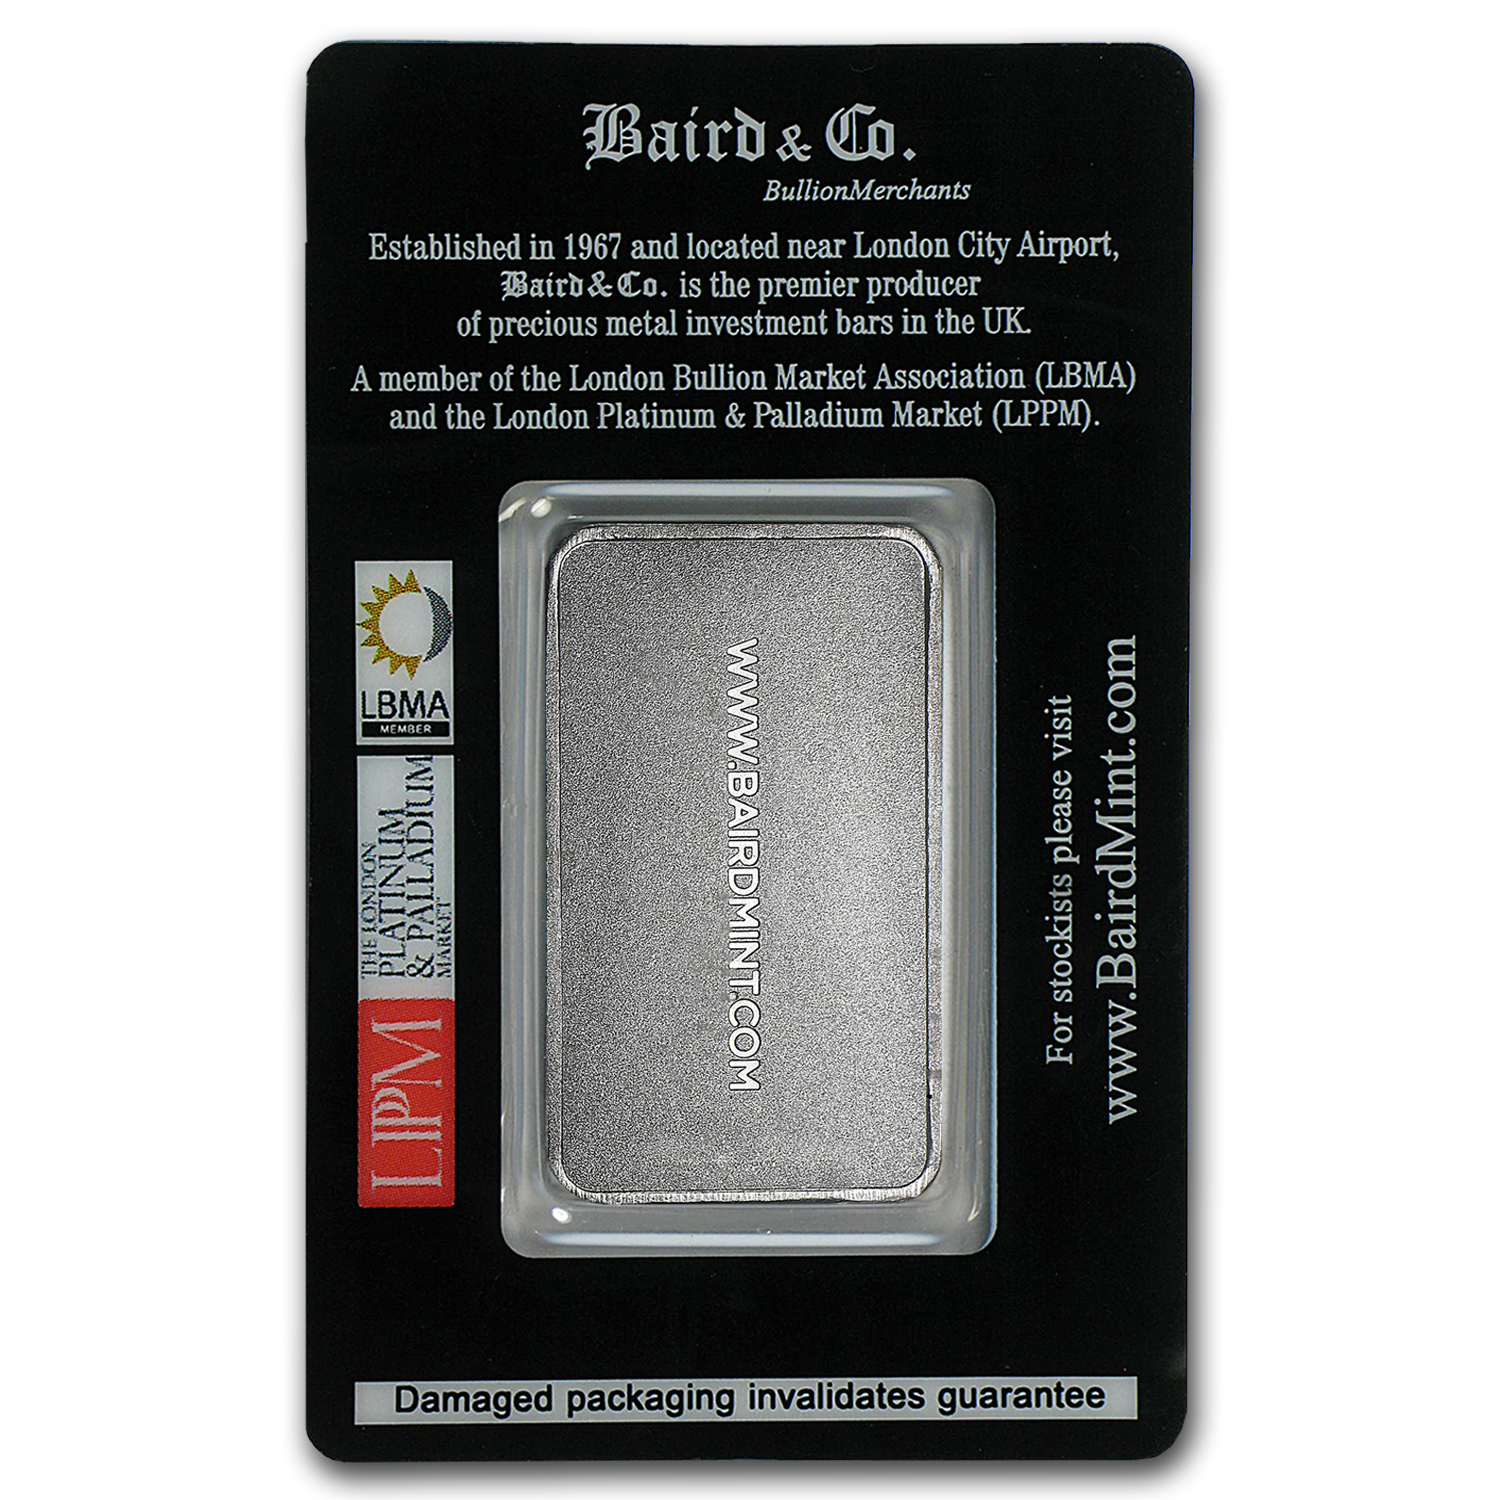 1 oz Baird & Co. Platinum Bar (No Assay) .999+ Fine